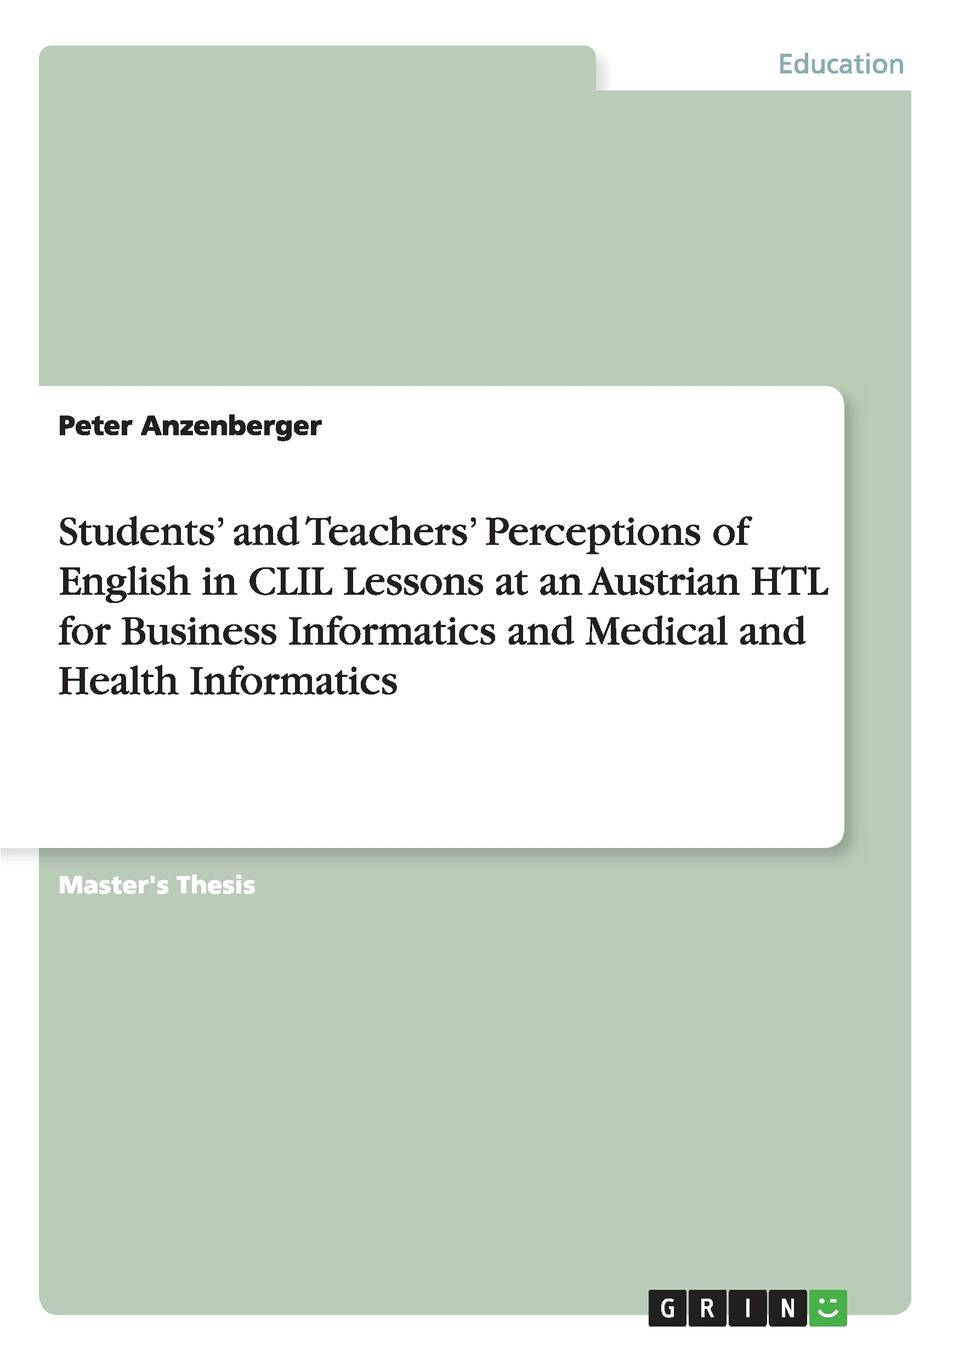 цены на Peter Anzenberger Students. and Teachers. Perceptions of English in CLIL Lessons at an Austrian HTL for Business Informatics and Medical and Health Informatics в интернет-магазинах